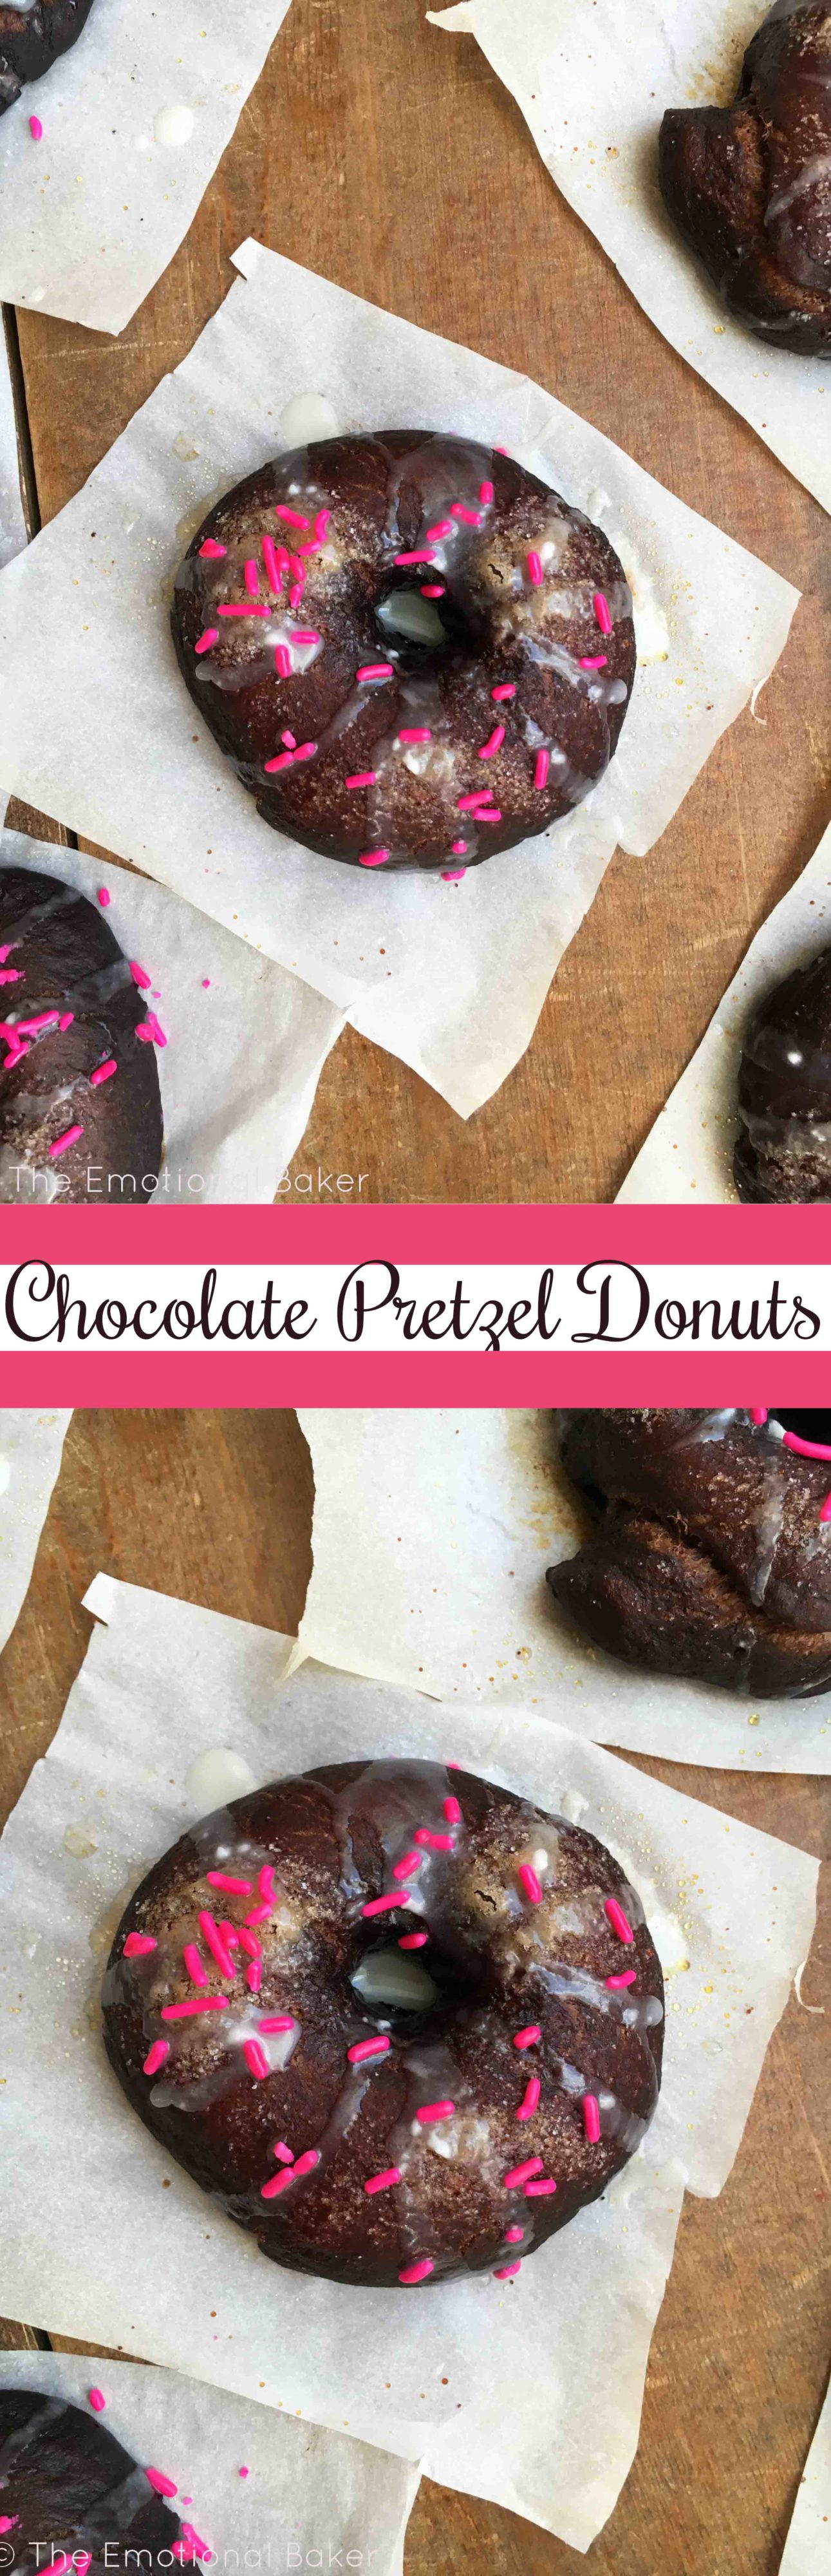 Chocolate Pretzel Donuts